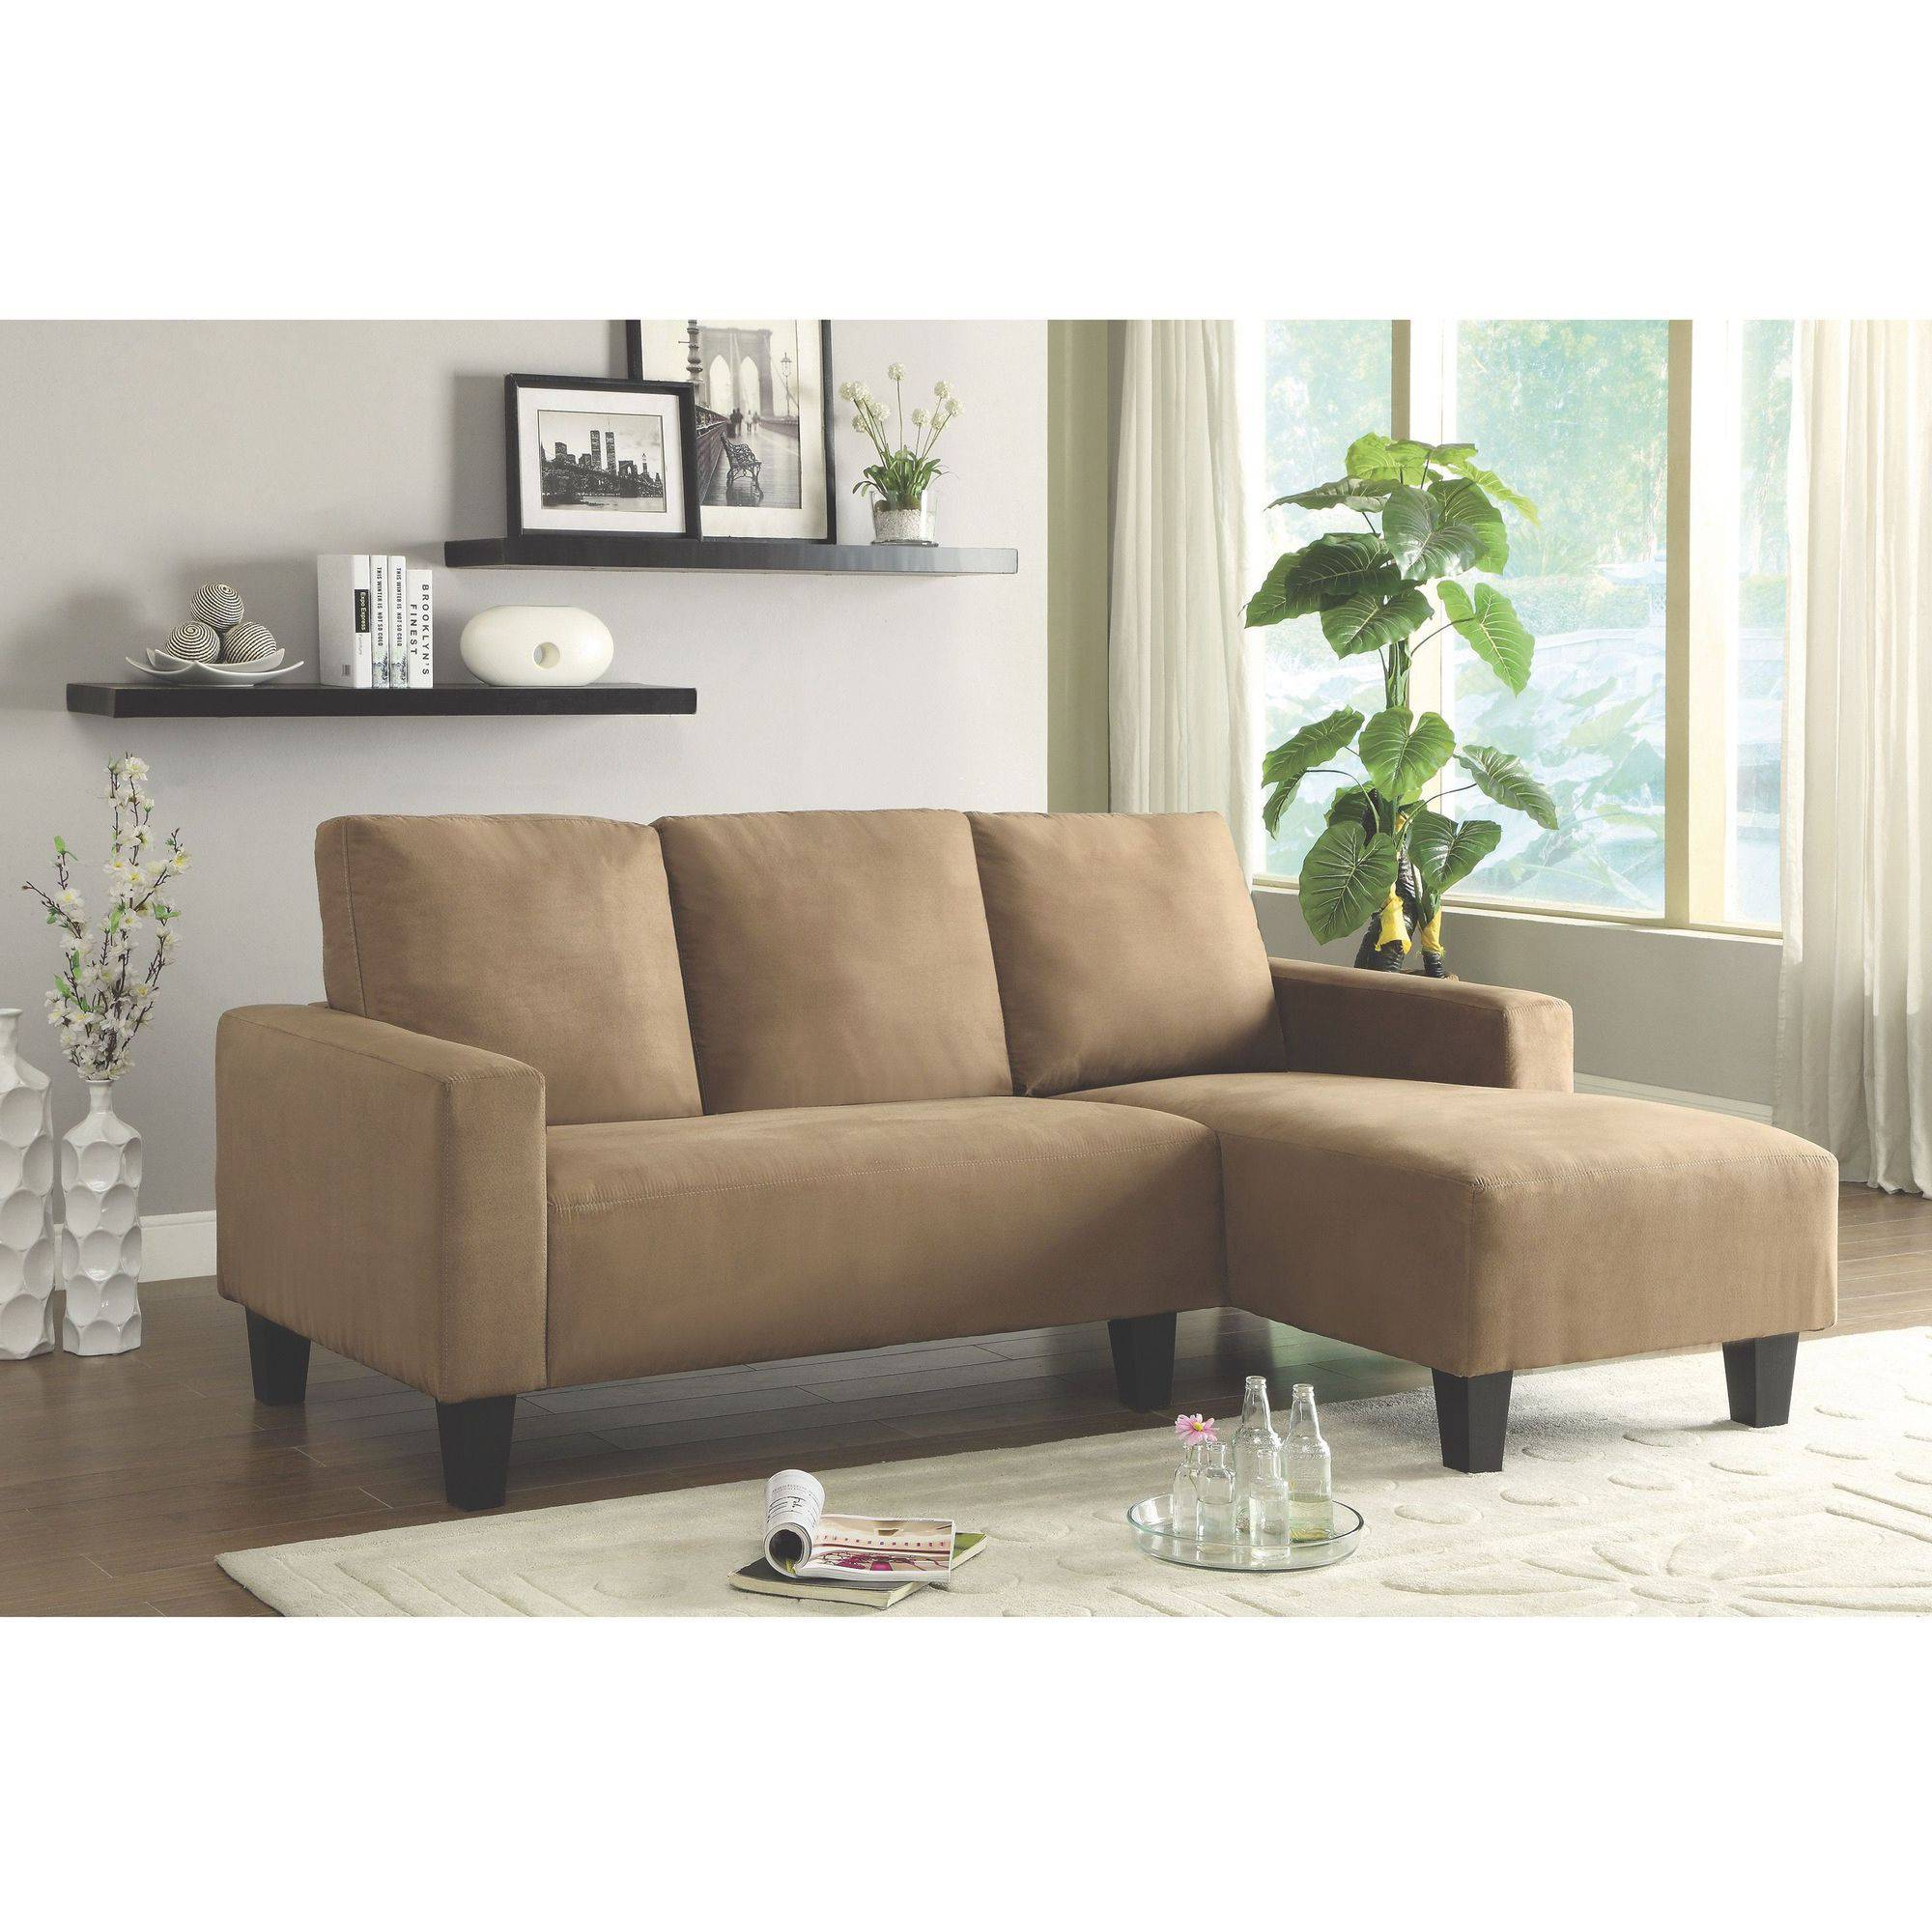 Coaster pany Sothell Sectional Walmart